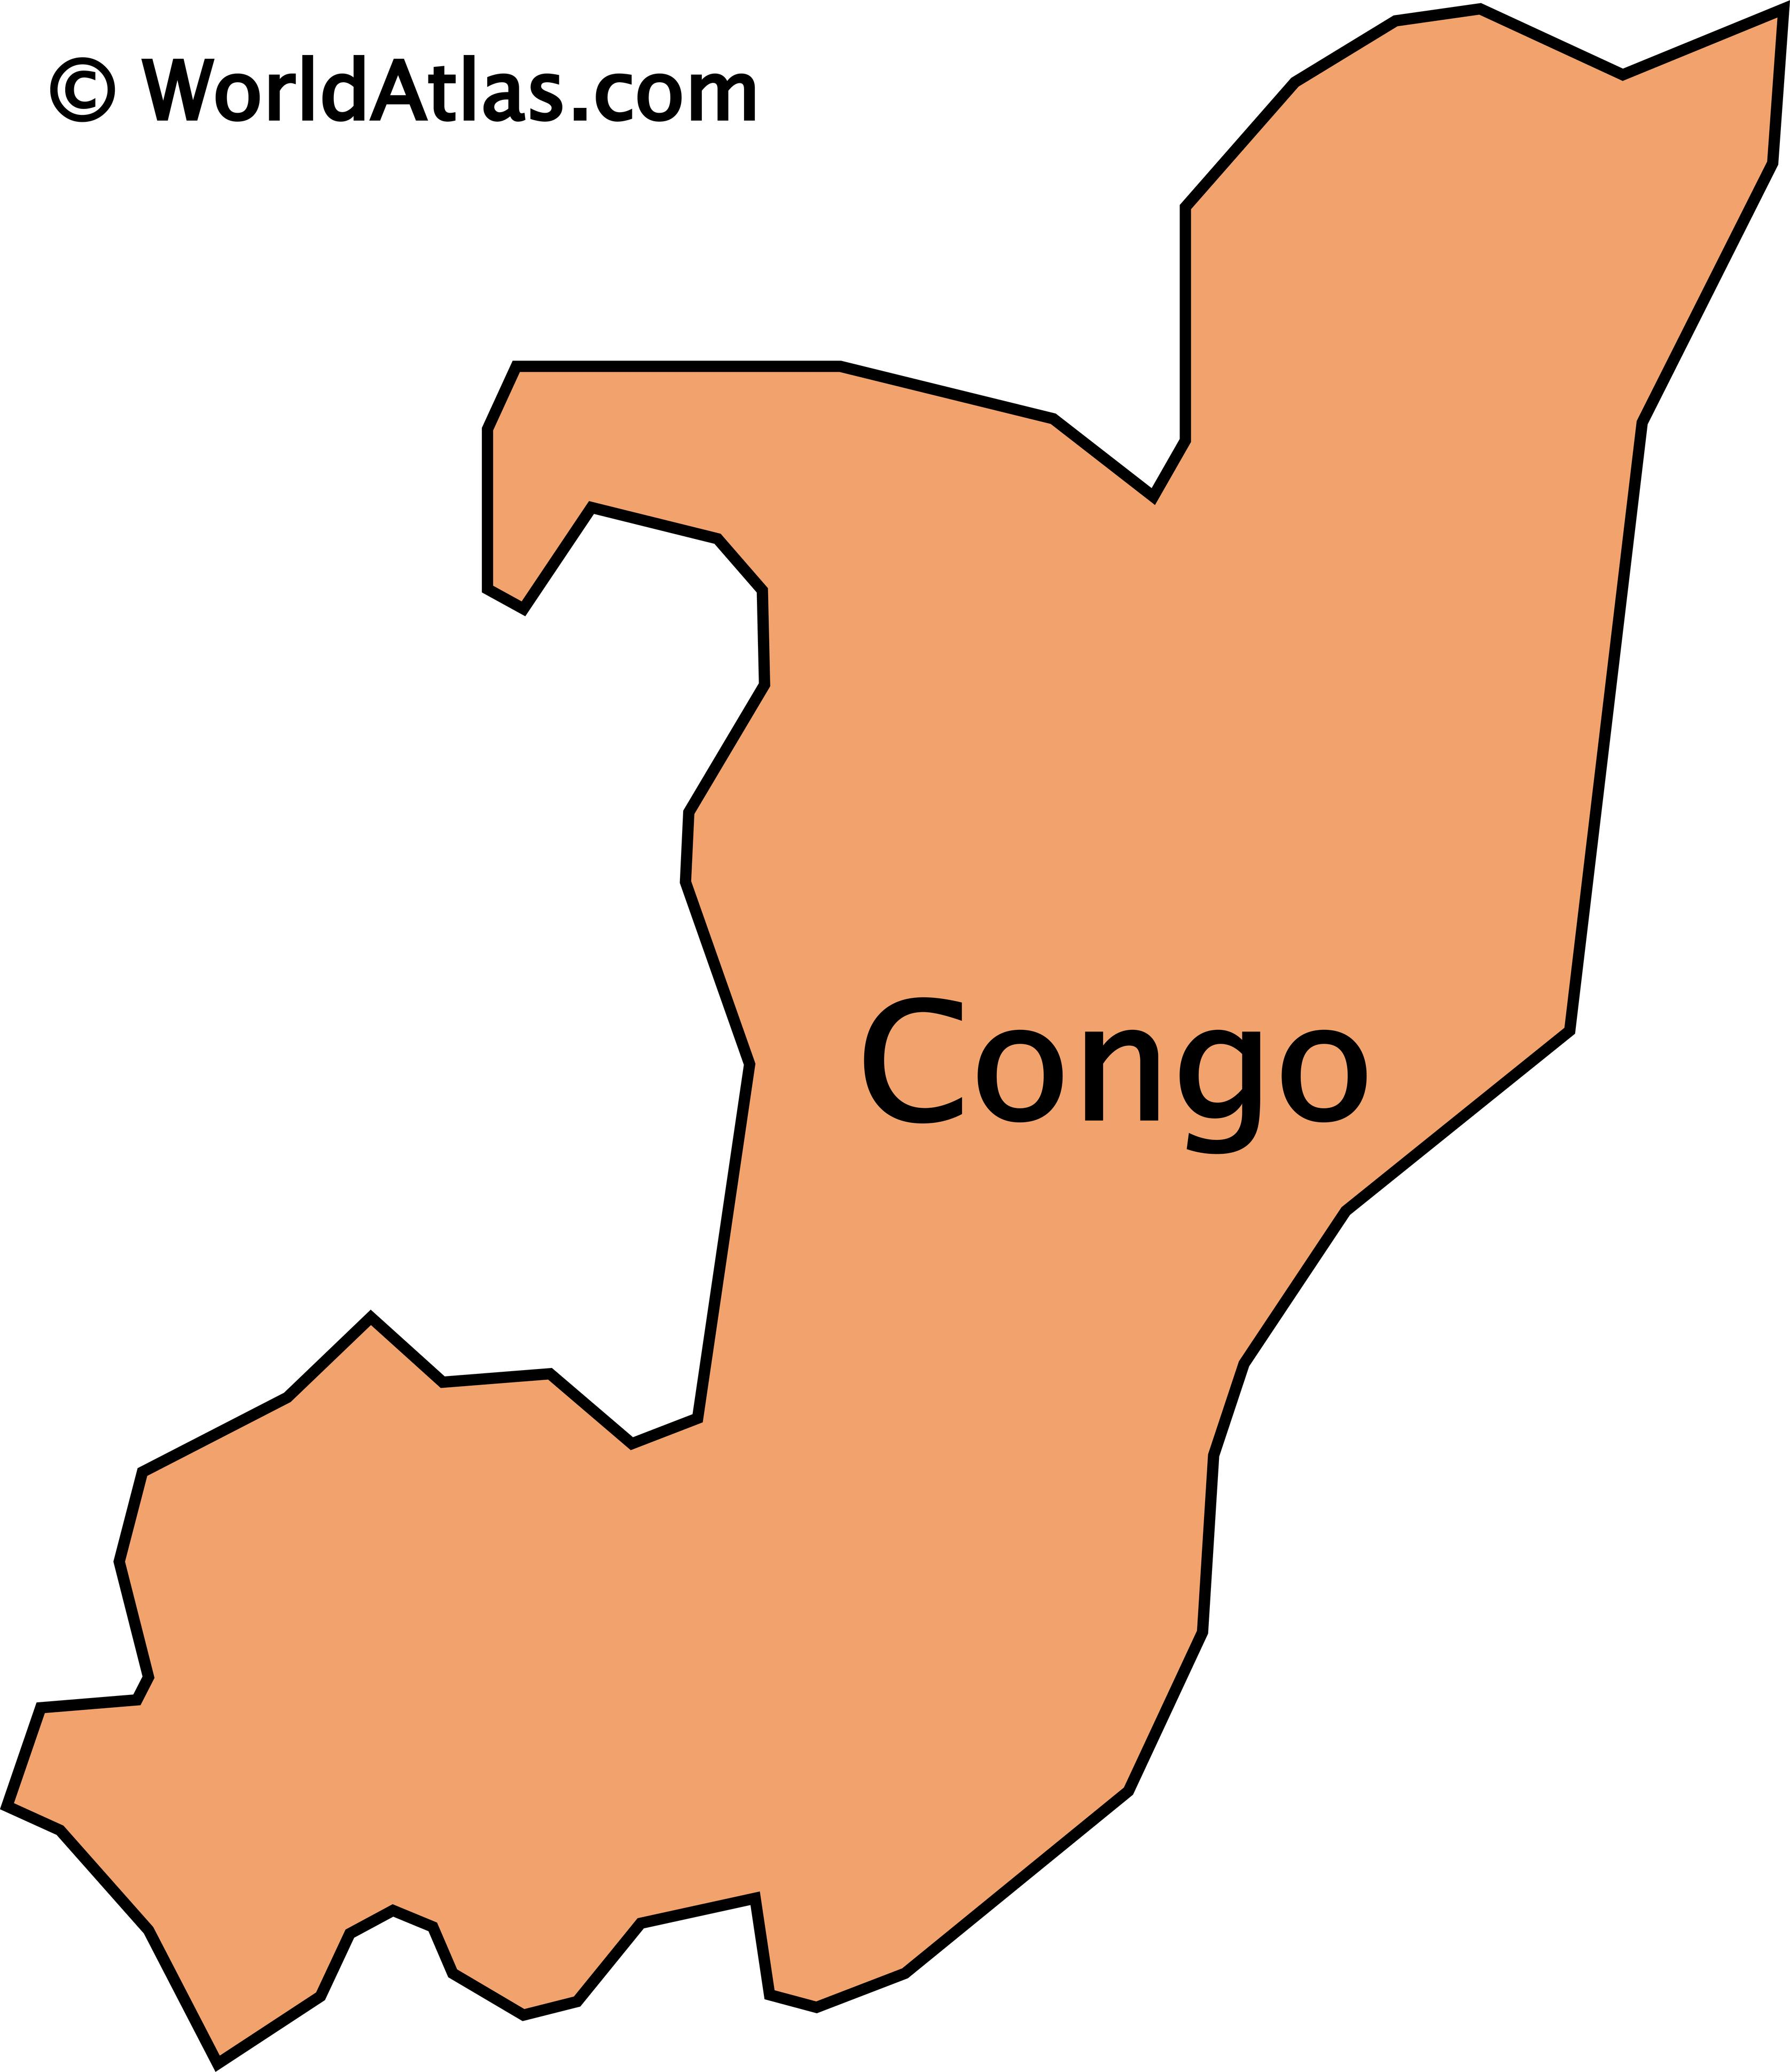 Outline map of Congo